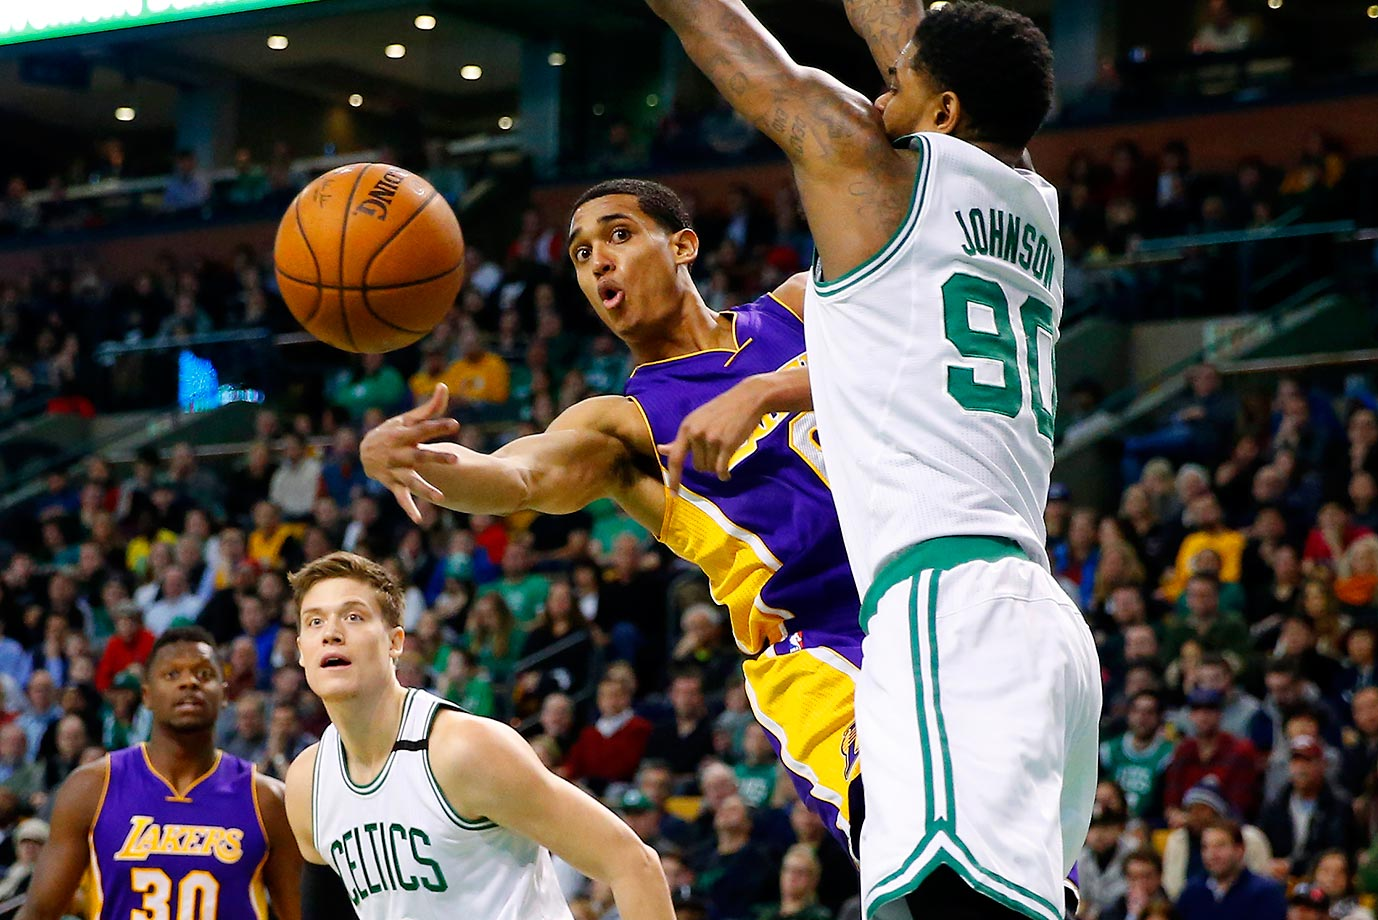 Jordan Clarkson of the Los Angeles Lakers makes a pass around Amir Johnson  of the Boston Celtics.